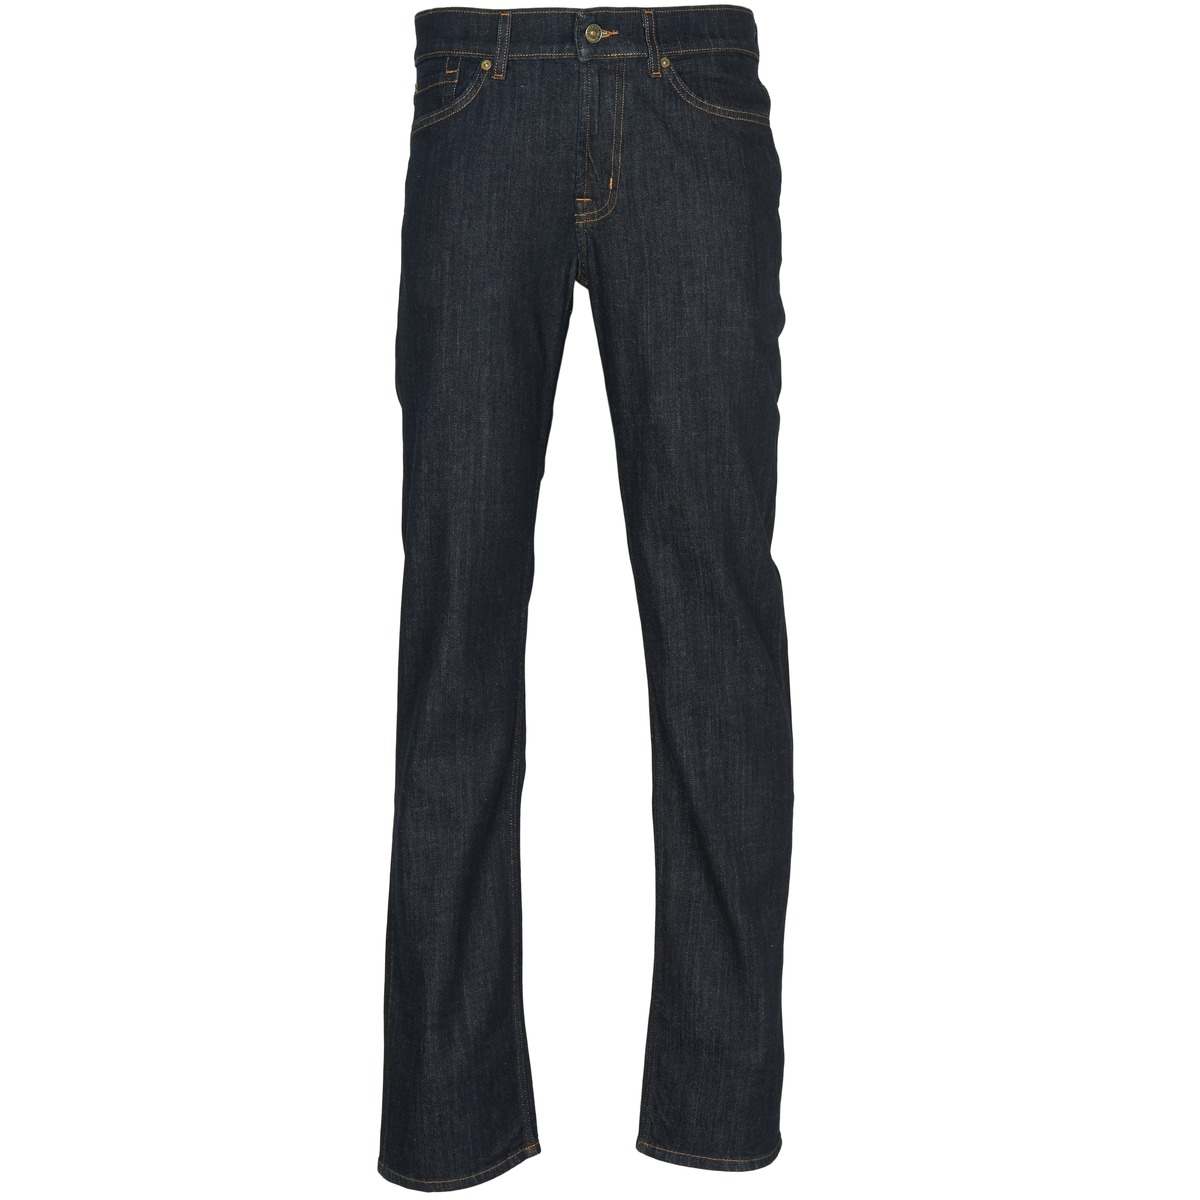 7 for all Mankind SLIMMY OASIS TREE Blue